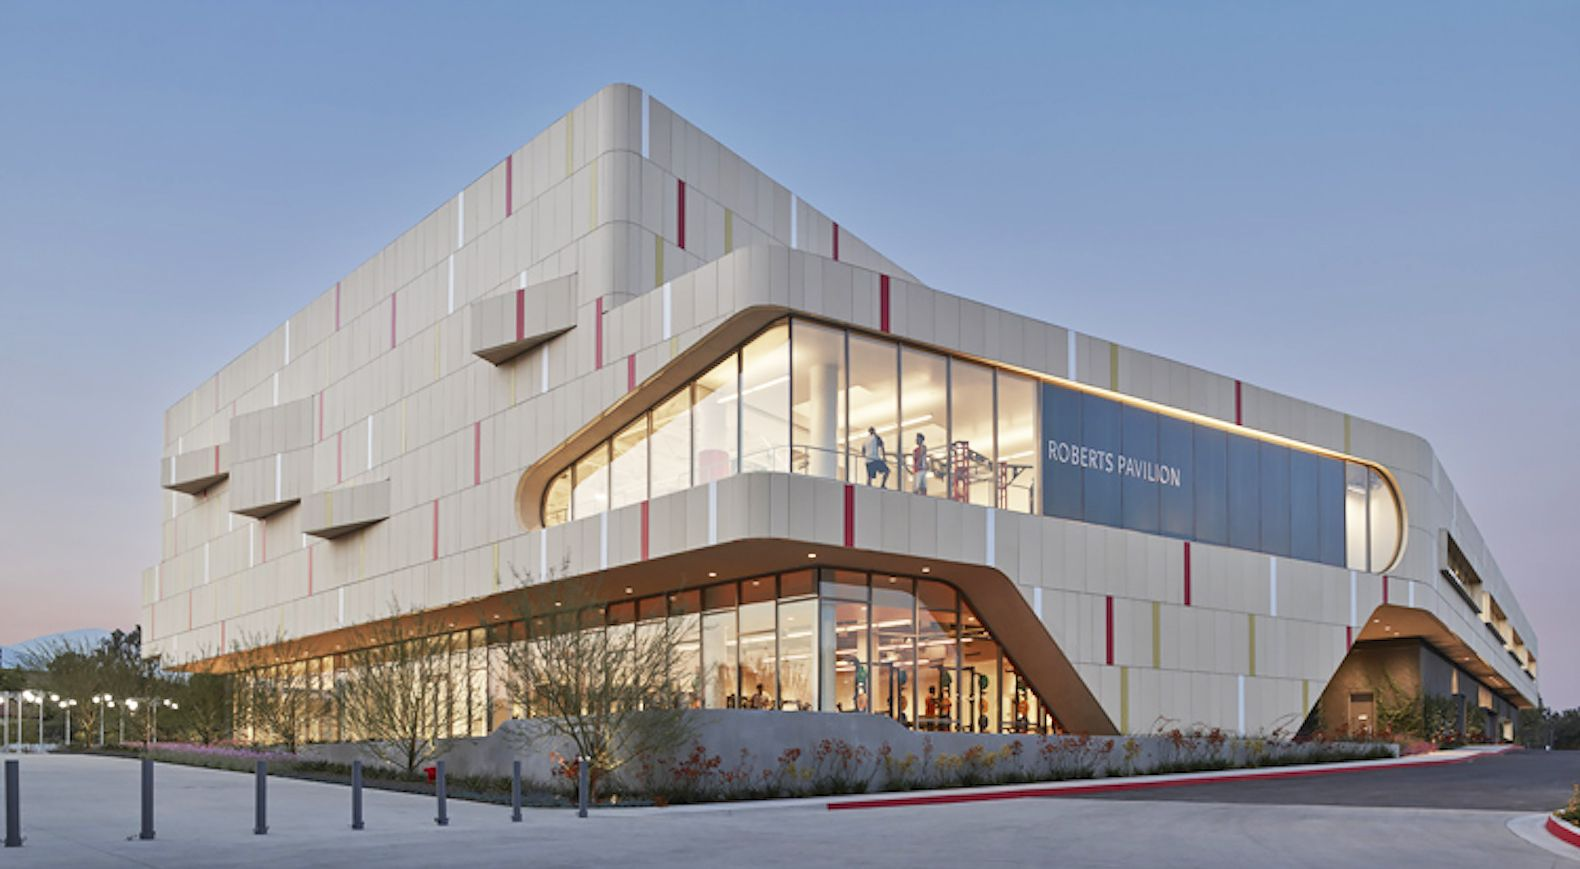 Sustainable fitness center combines good looks and an ecofriendly mantra in California    is part of architecture Old New Pictures - John Friedman Alice Kimm Architects designed Roberts Pavilion, an ecofriendly campus building at Claremont McKenna College that serves as an athletics center and social hub